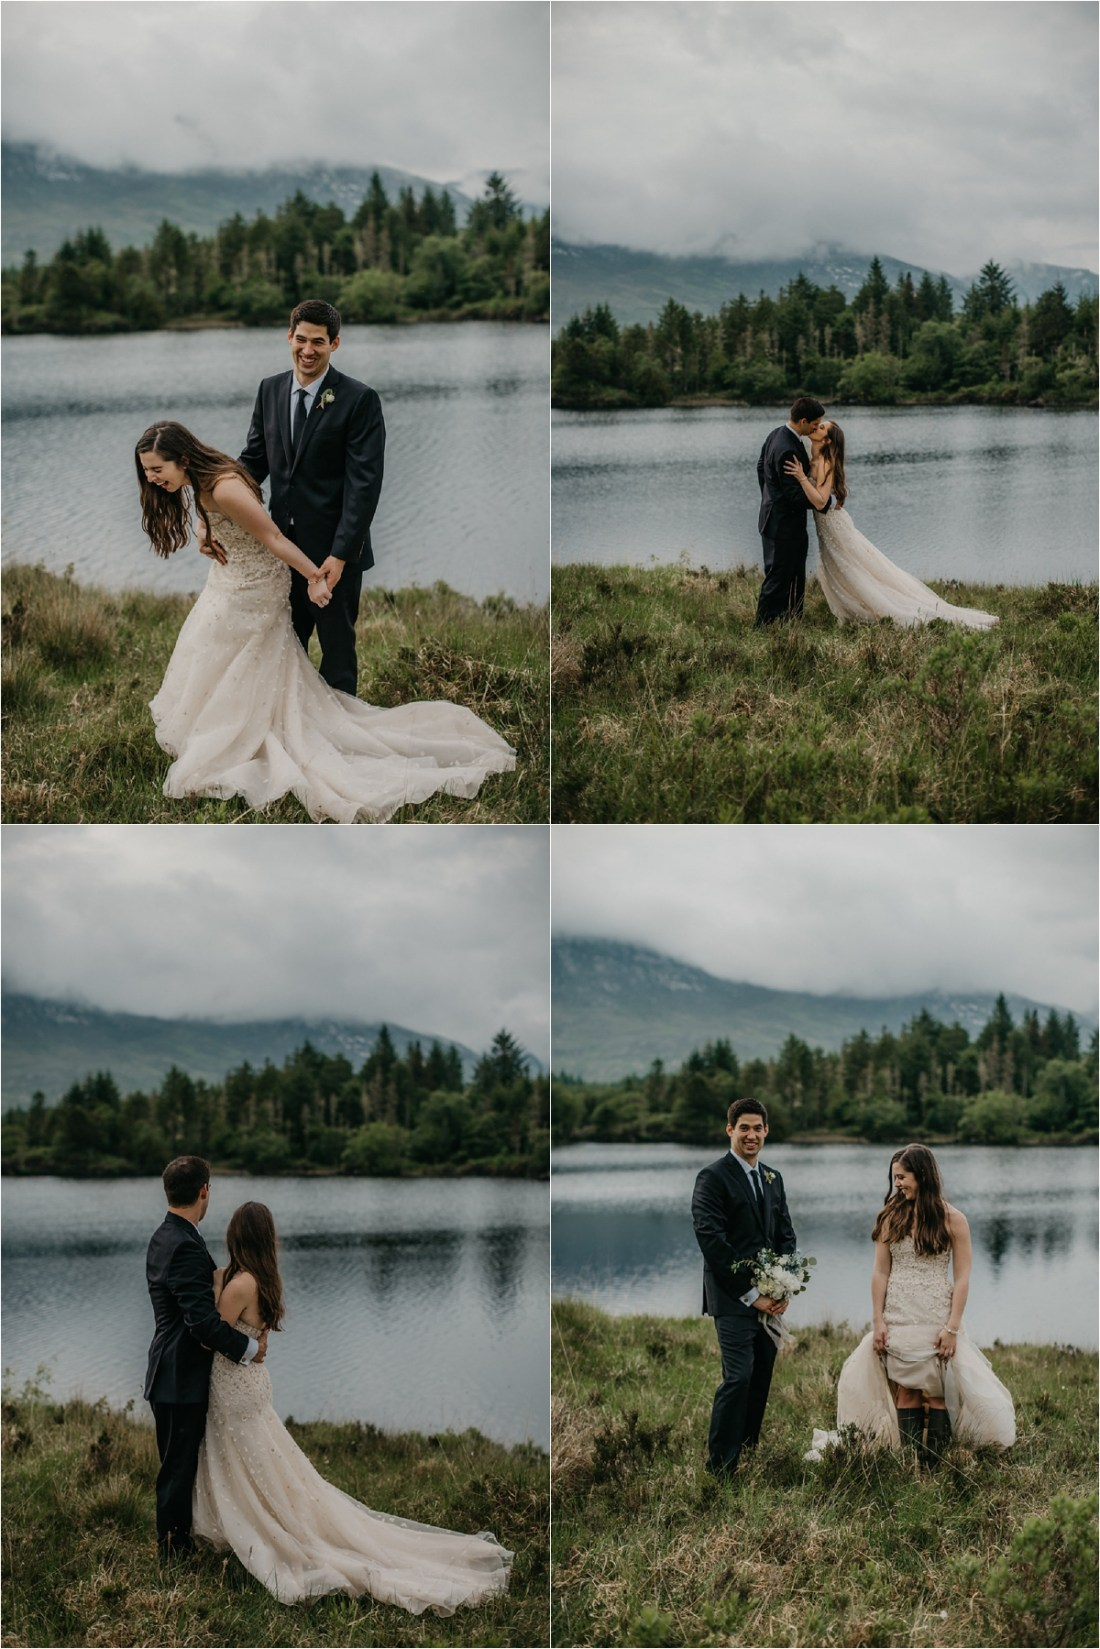 Bride and groom pictures by the lake at a castle in County Galway by No Other Love Photography